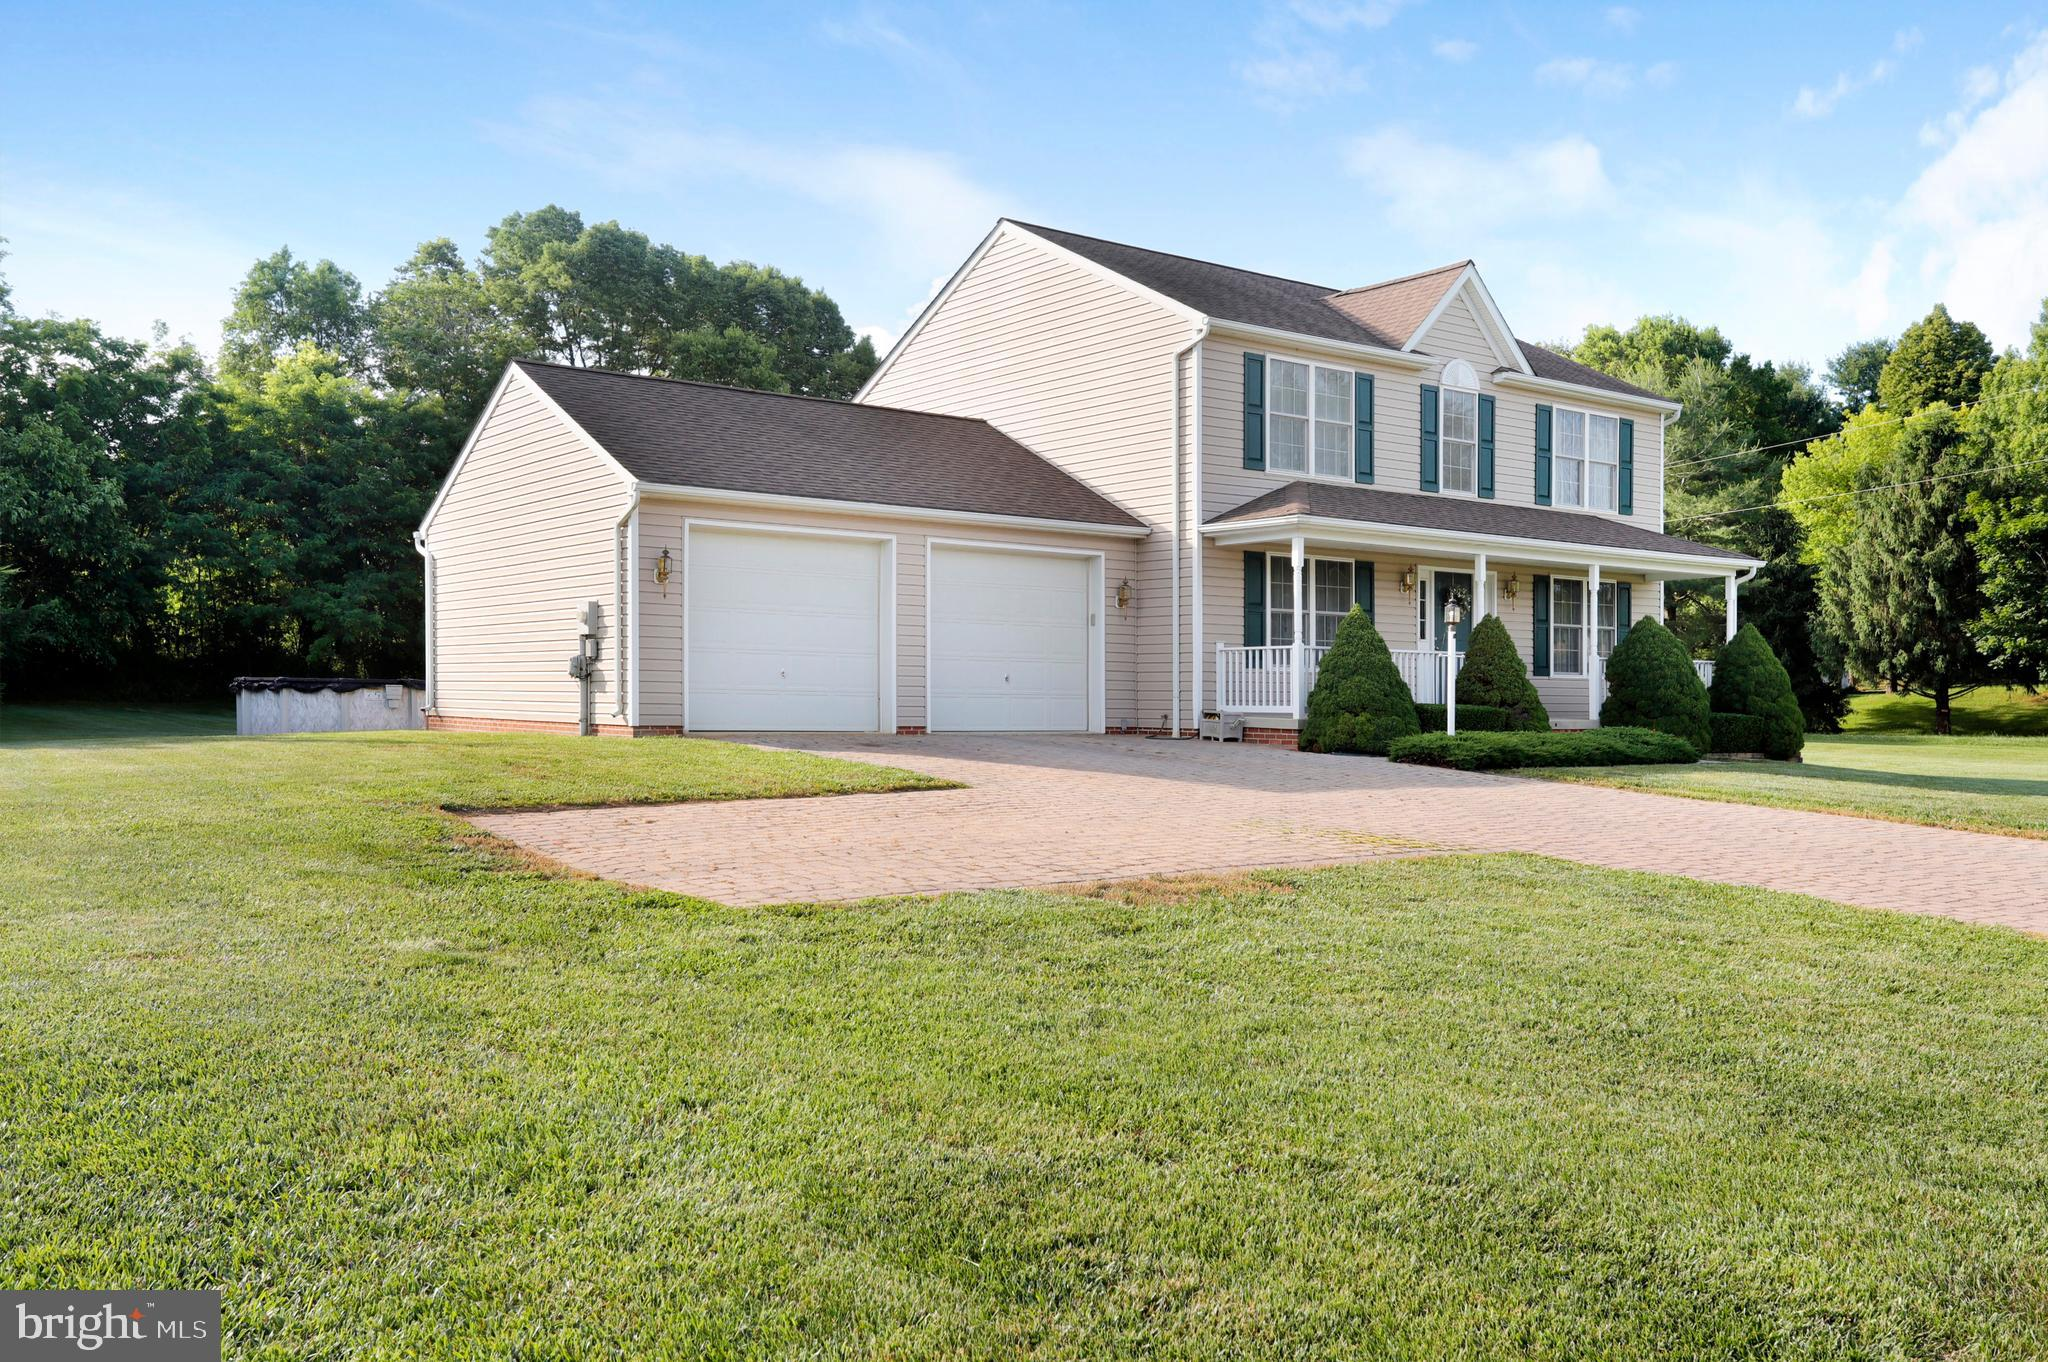 9136 JORDAN ROAD, FAIRPLAY, MD 21733